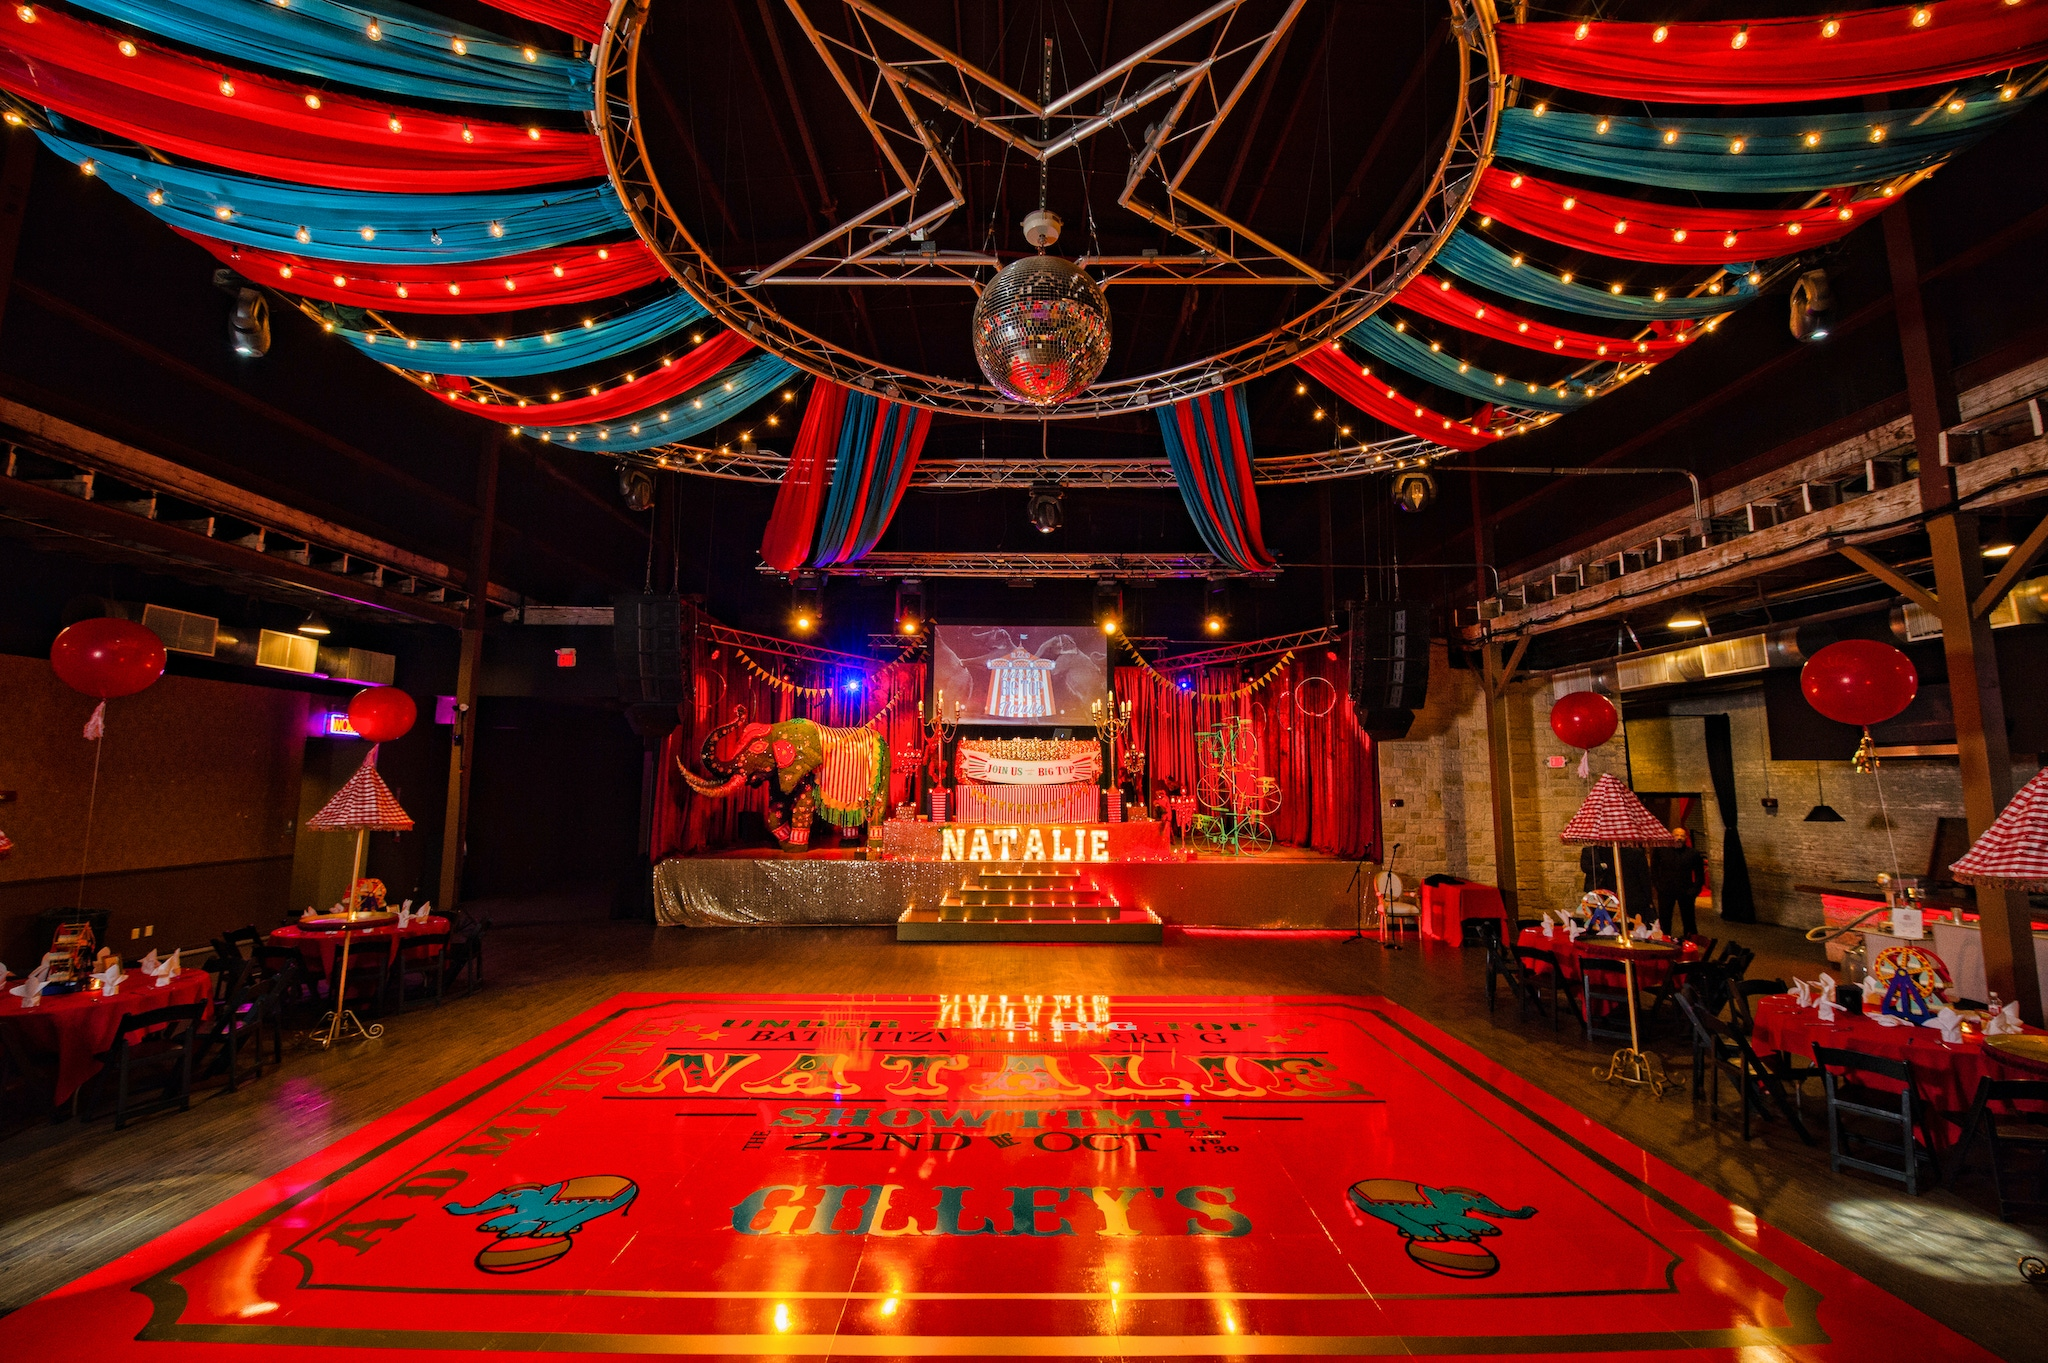 Circus themed bat mitzvah